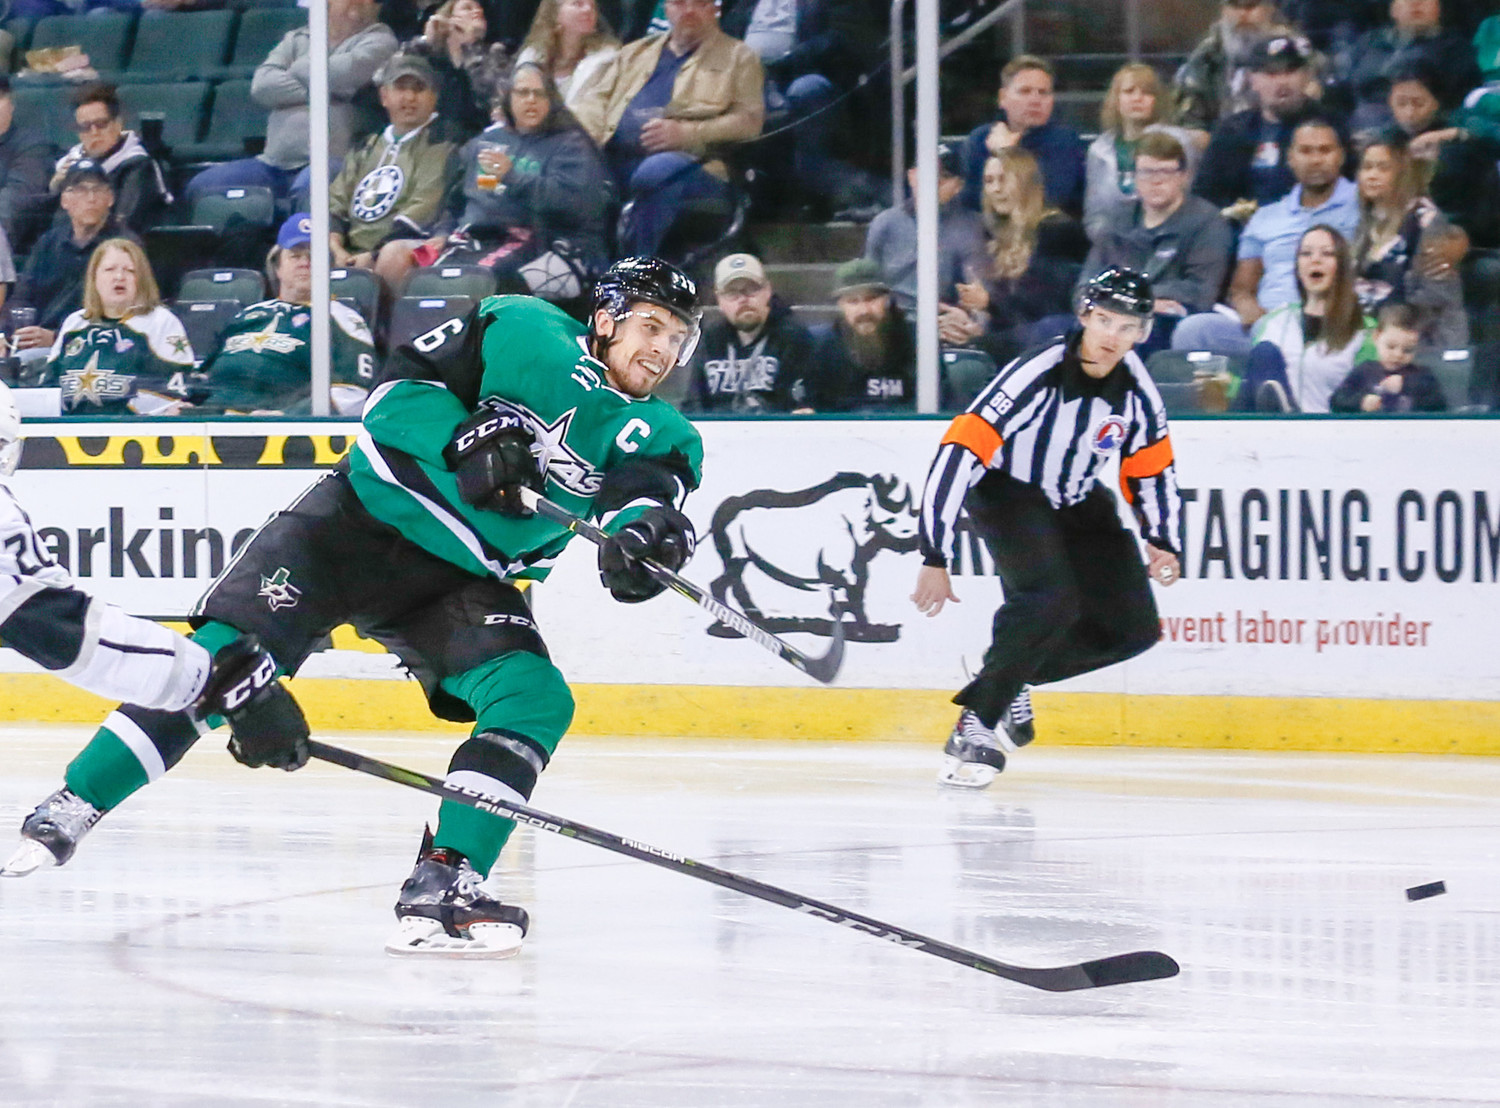 Curtis McKenzie and the Texas Stars face off with the Rockford IceHogs in the Western Conference Finals beginning Friday night. McKenzie won the Calder Cup with Texas in 2014.